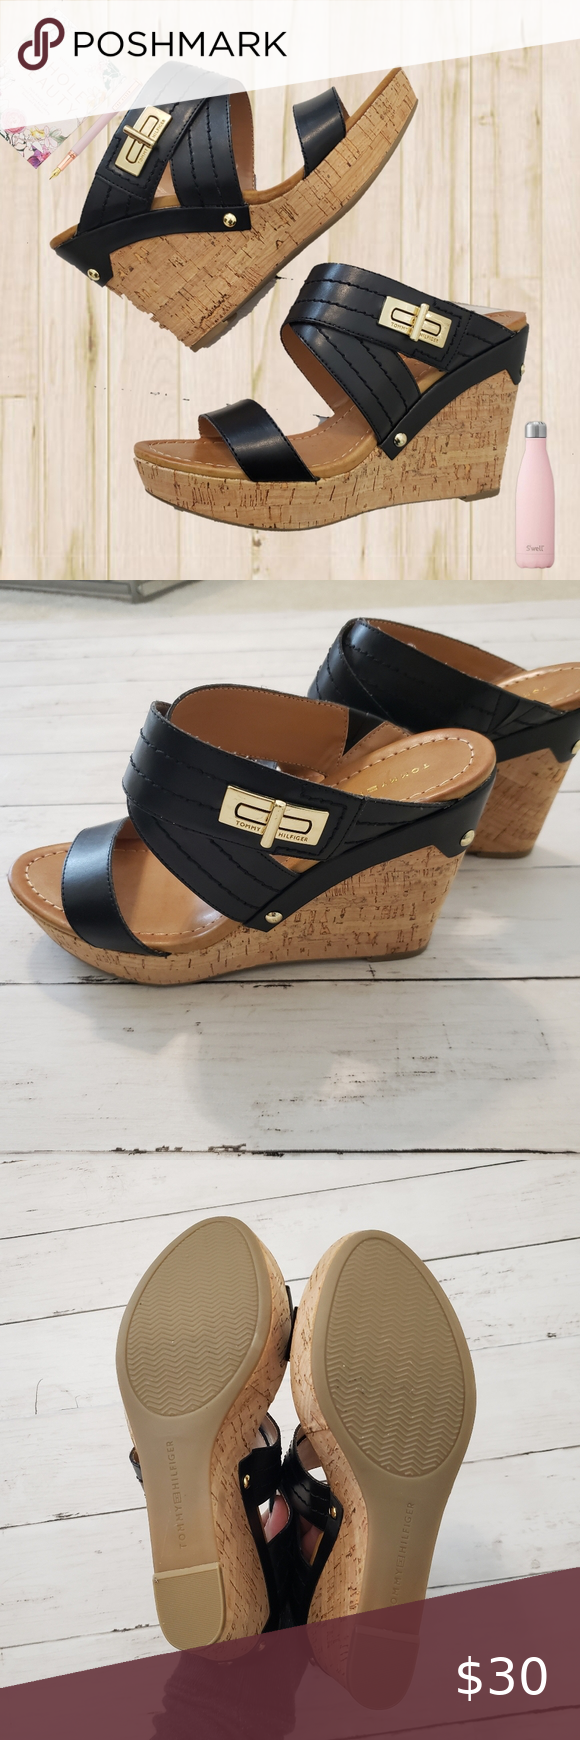 Condividere Nove Alla meditazione  Tommy Hilfiger Cork Wedge in 2020 | Tommy hilfiger shoes, Tommy hilfiger,  Cork wedges shoes